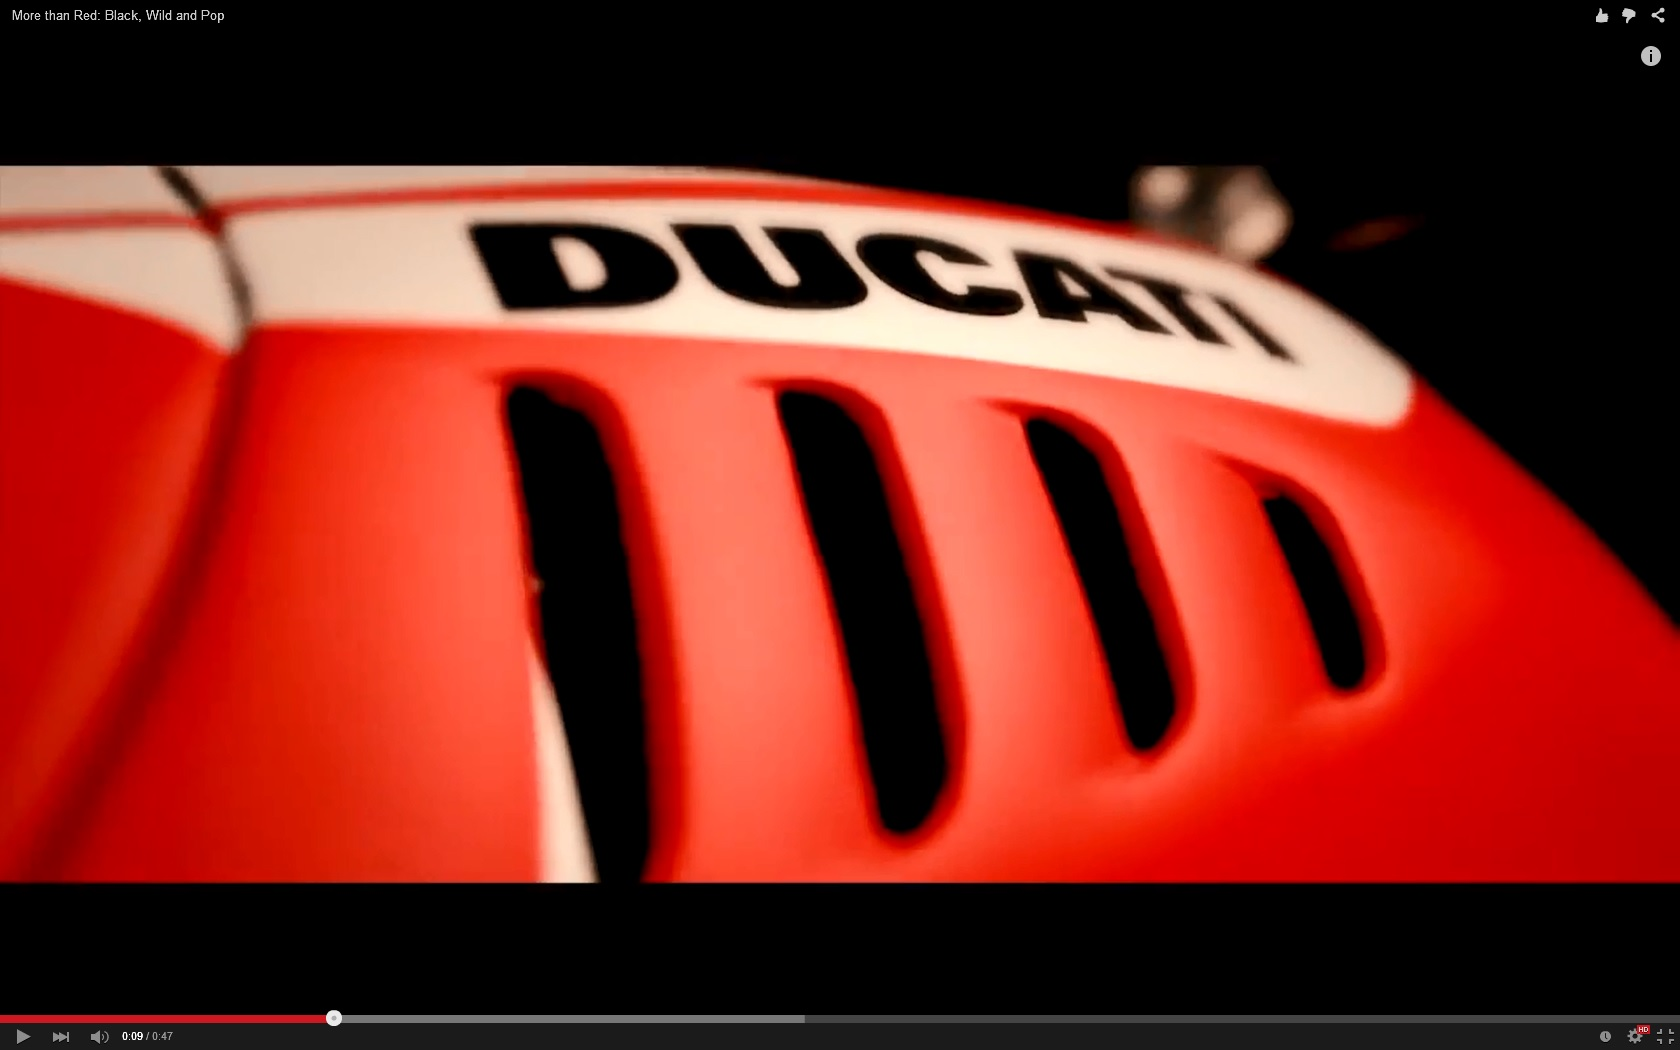 First glimpse of new Scrambler in latest Ducati teaser